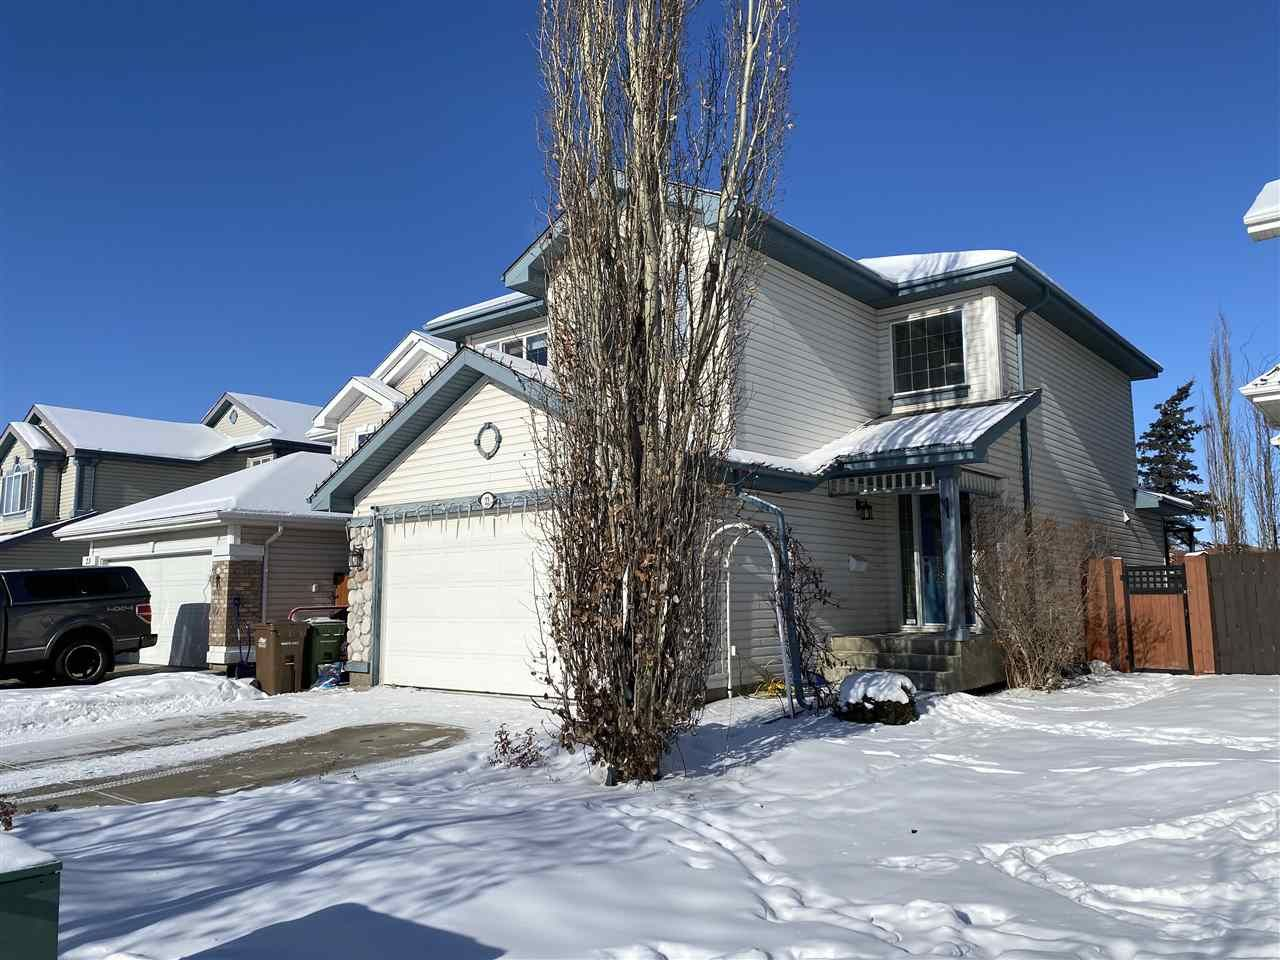 Main Photo: 22 DOUCETTE Place NW: St. Albert House for sale : MLS®# E4228372